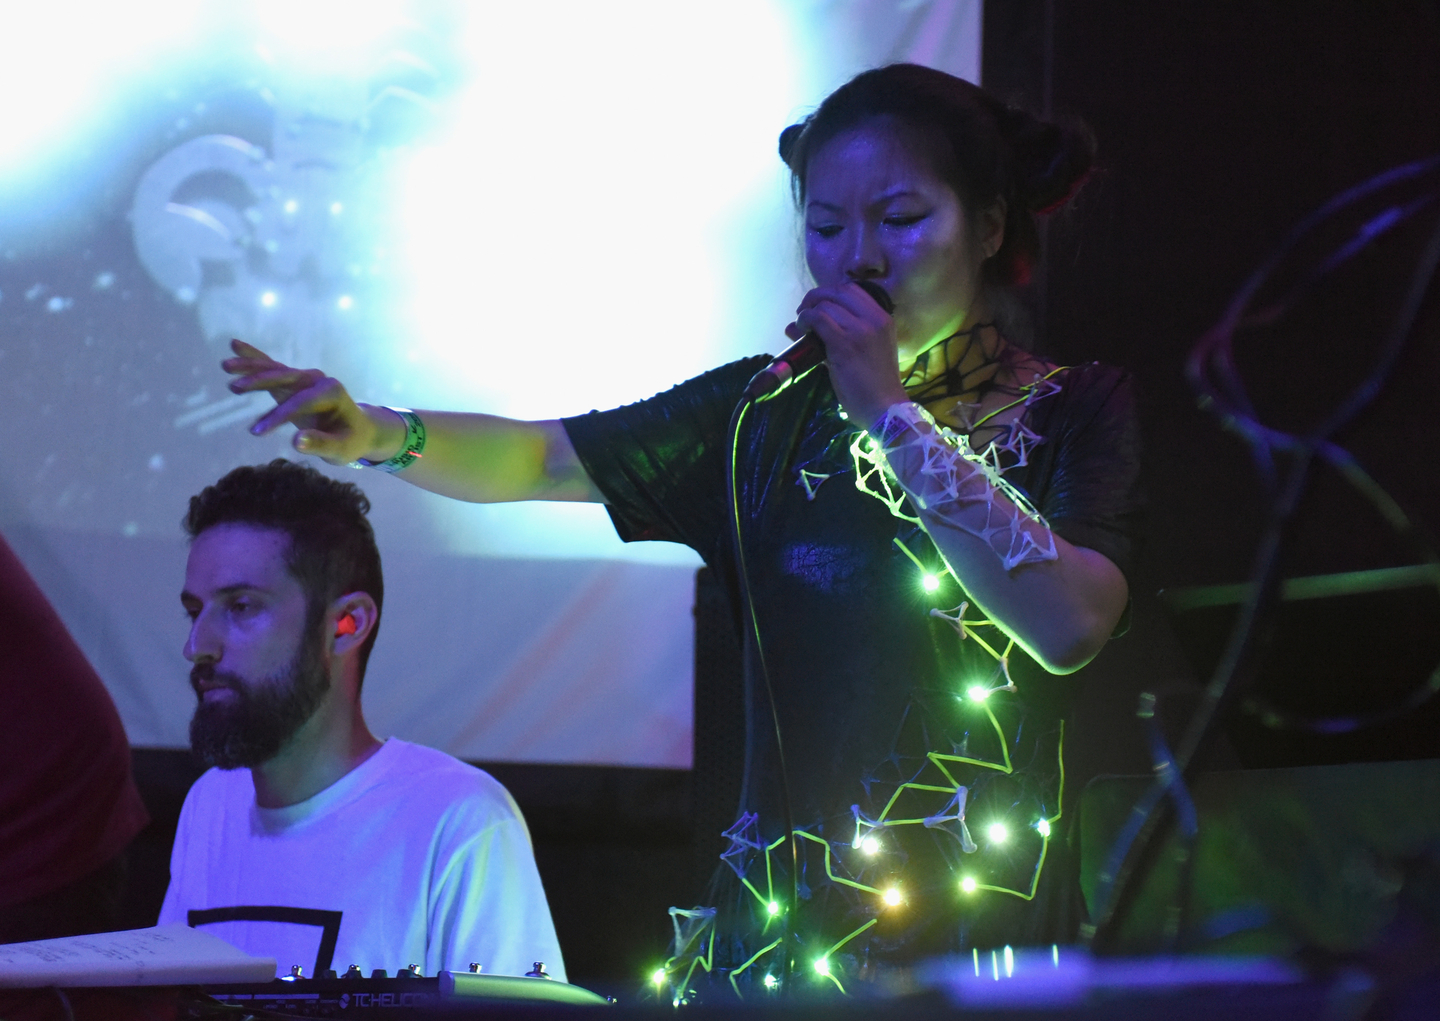 Jason Levine (L) and May Cheung of Scorpion Mouse perform onstage at the Lush presents Algorave: Live Coding Party at The Main II.